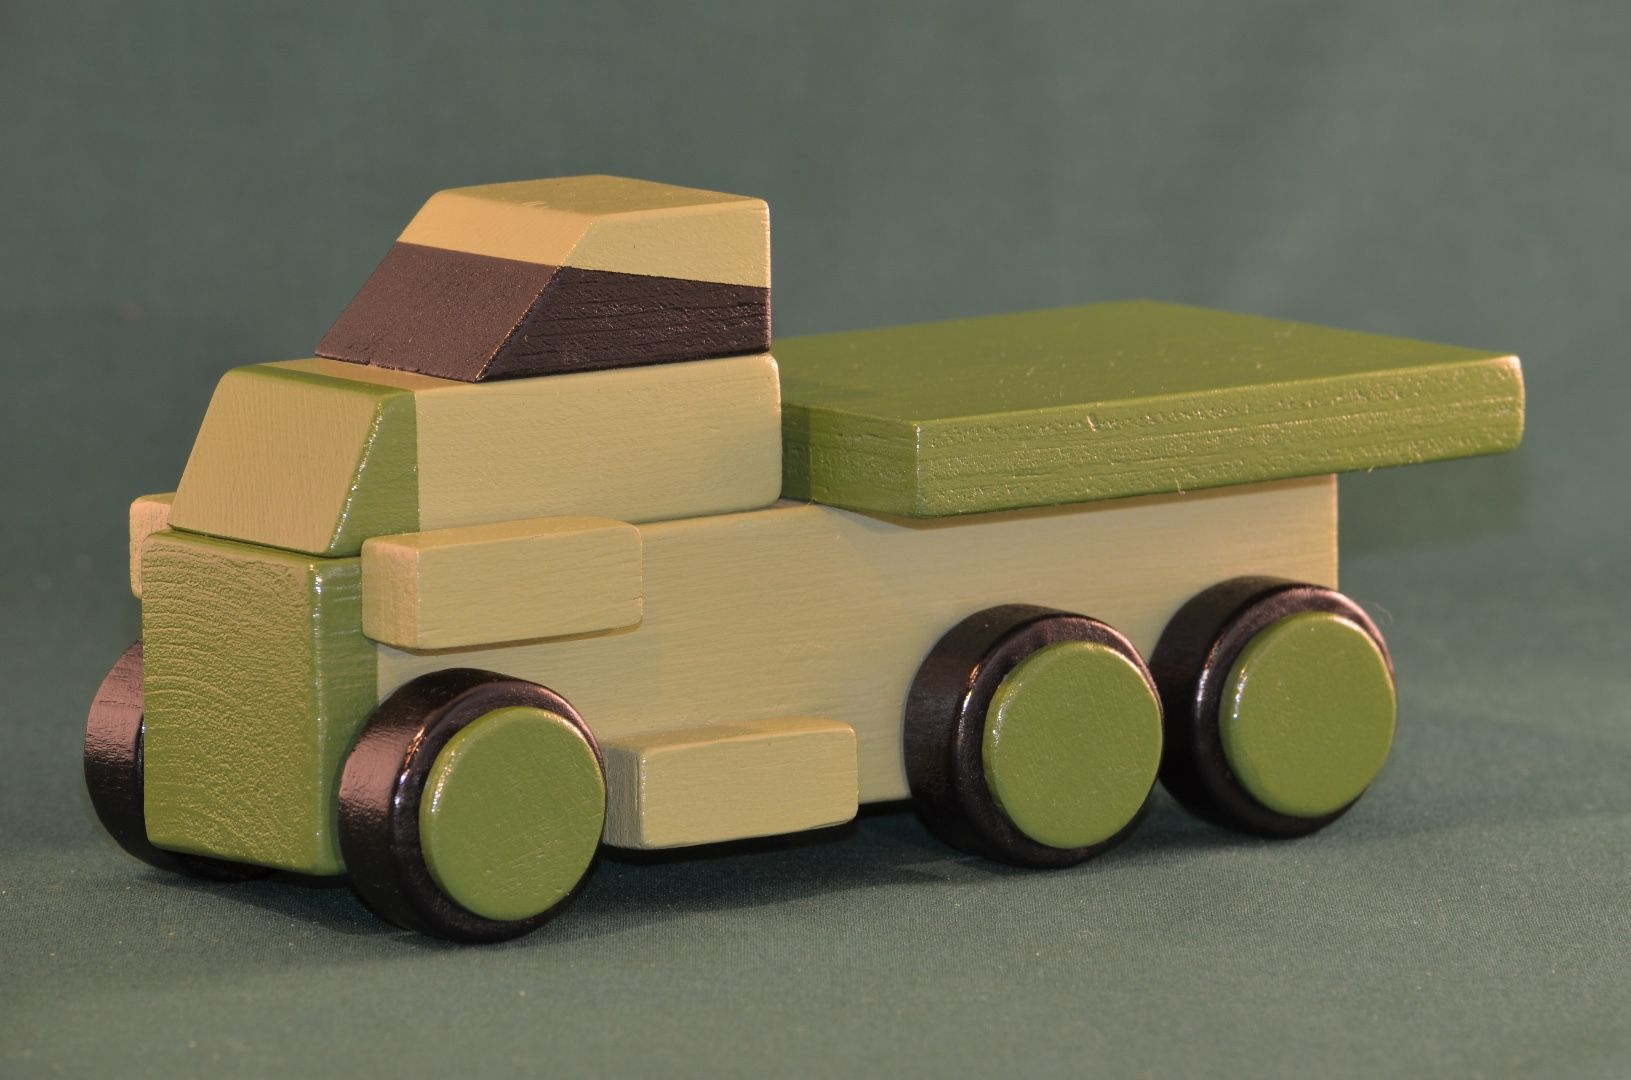 Handmade Wooden Toy Cars And Trucks Quick Builds Plan Sets For The Table Saw Wood Toy Cars And Trucks Flat Bed Truck Yellow Black Jouet Bois